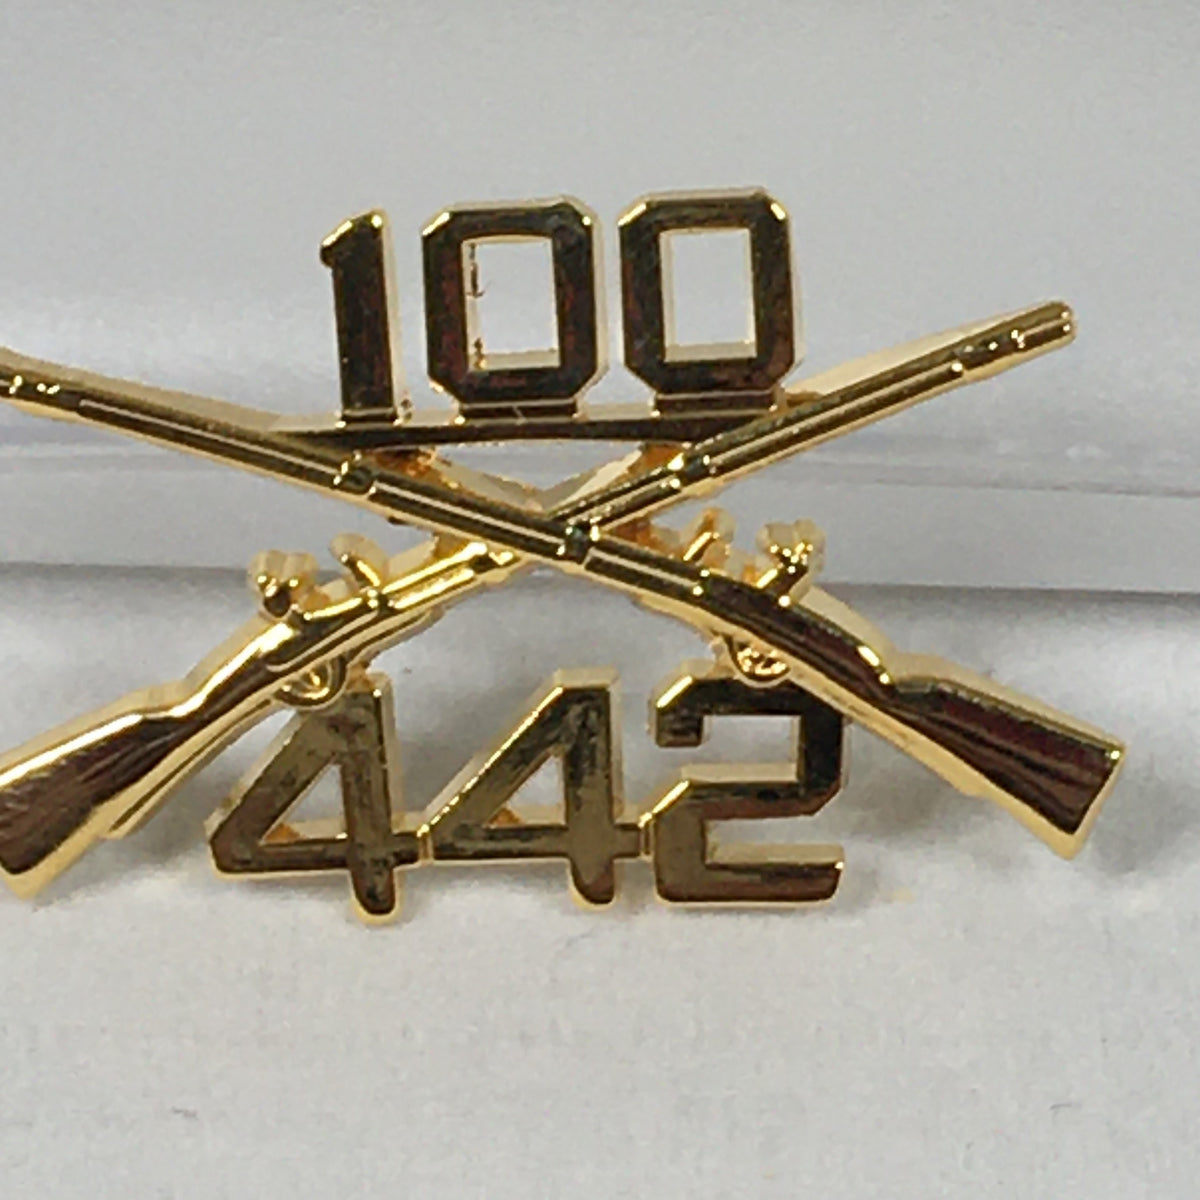 100th Bn, 442nd Inf Regimental Combat Team Crossed Rifle Pin